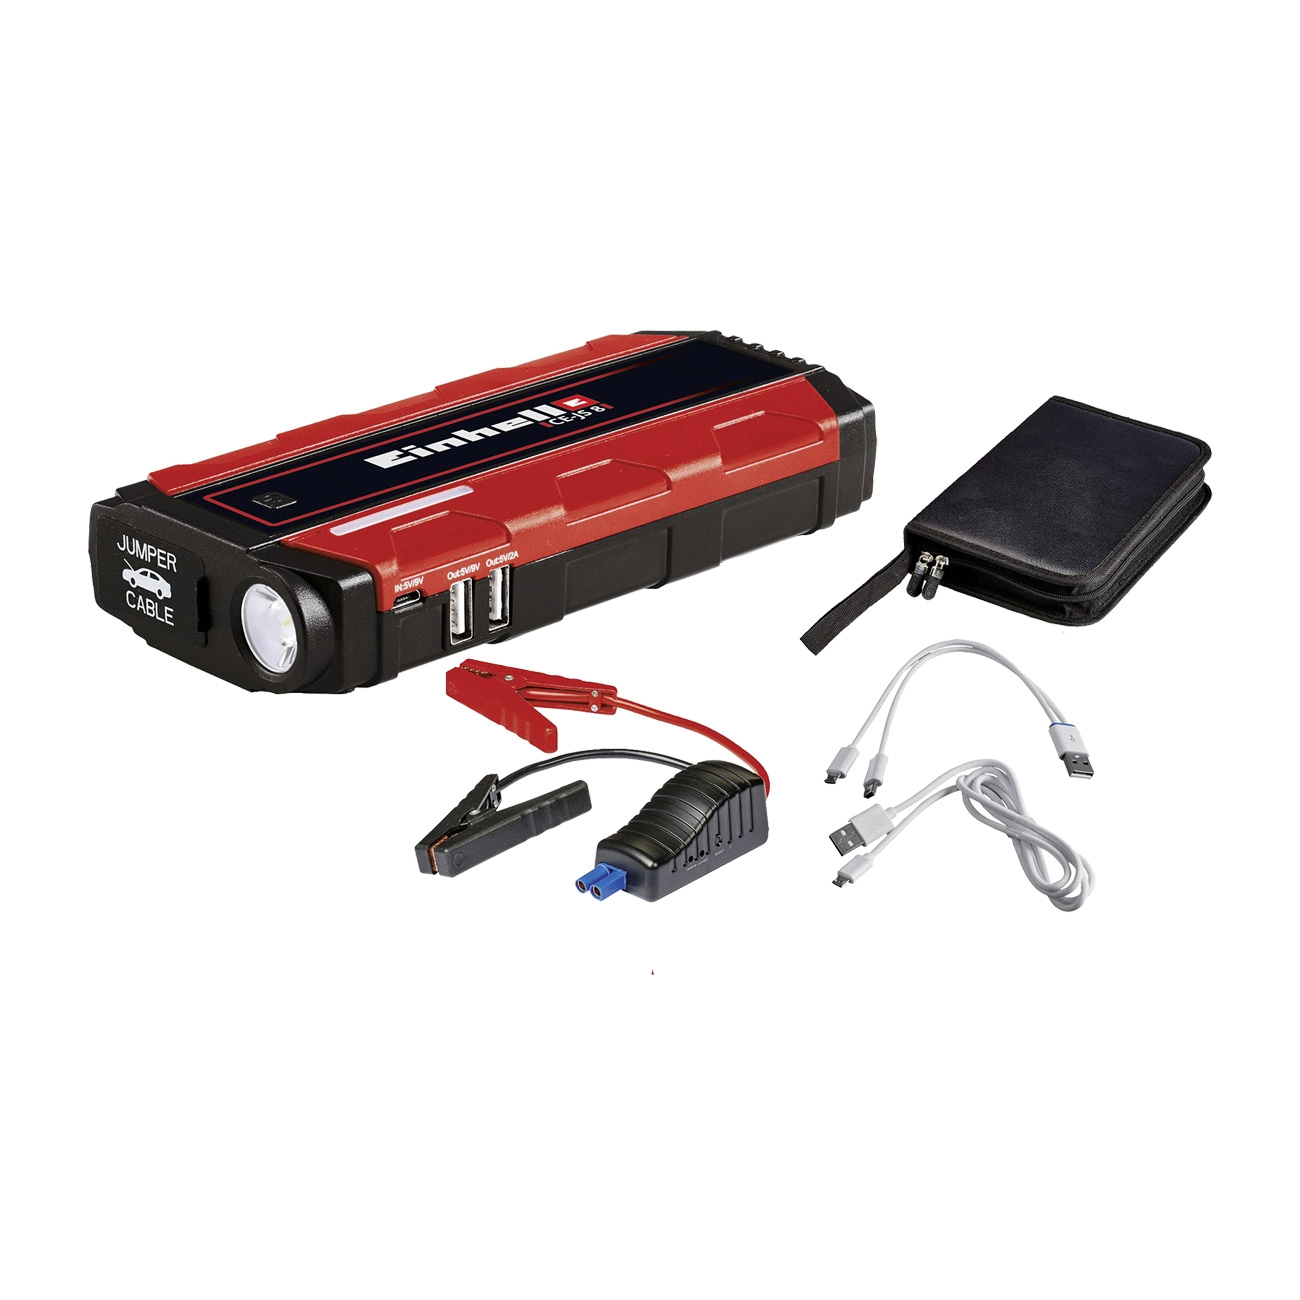 Image of Power bank Einhell CE-JS 8 Jump Start - Avviatore di emergenza auto